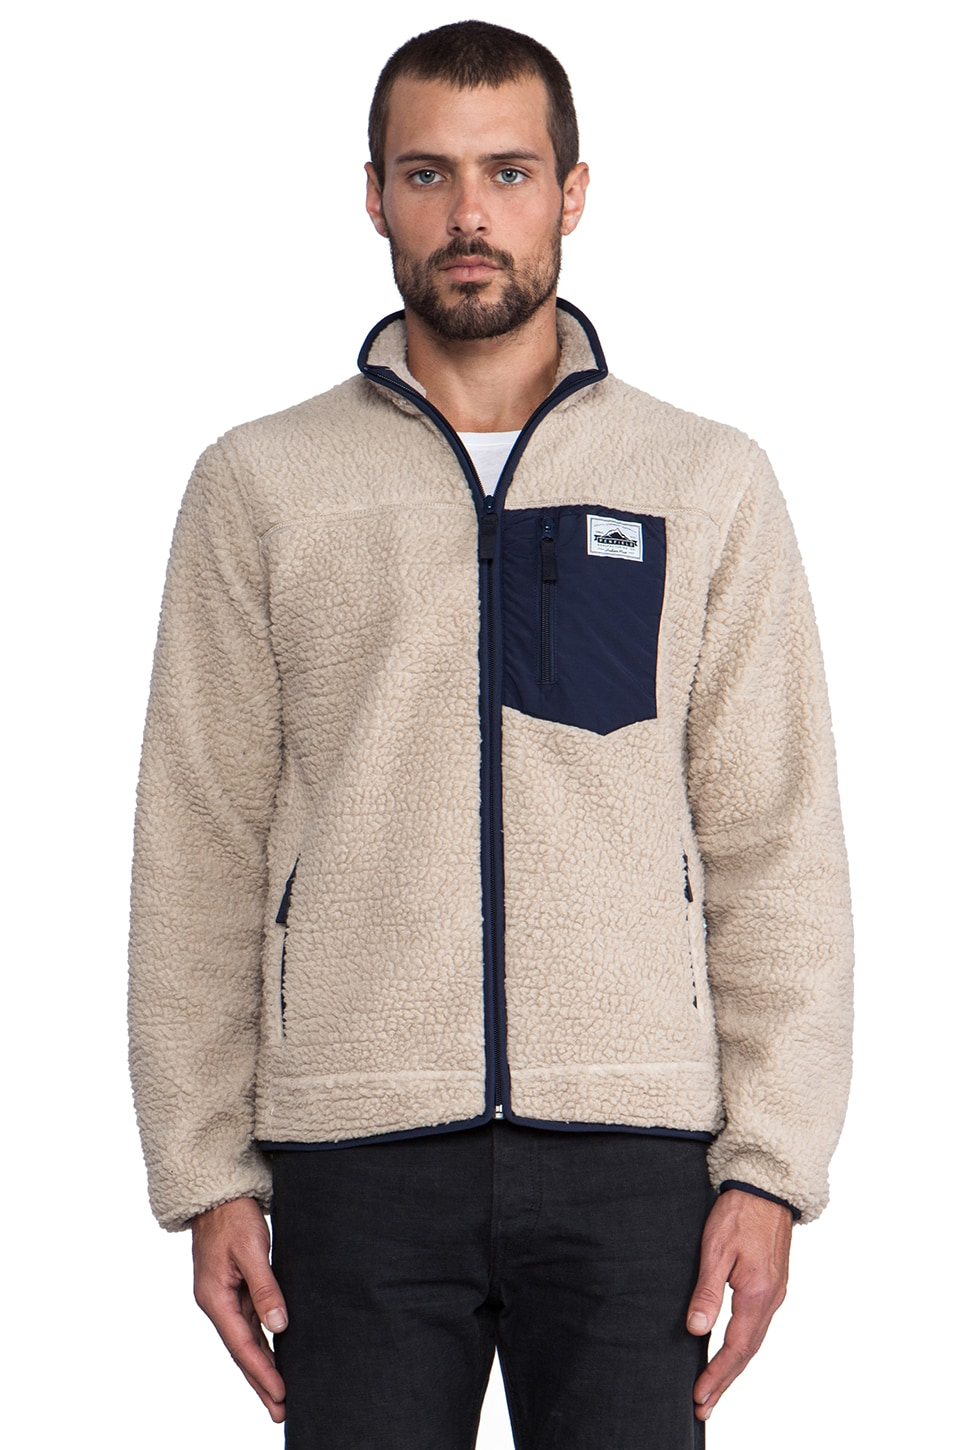 Penfield Lavic Pile Fleece Jacket in Tan